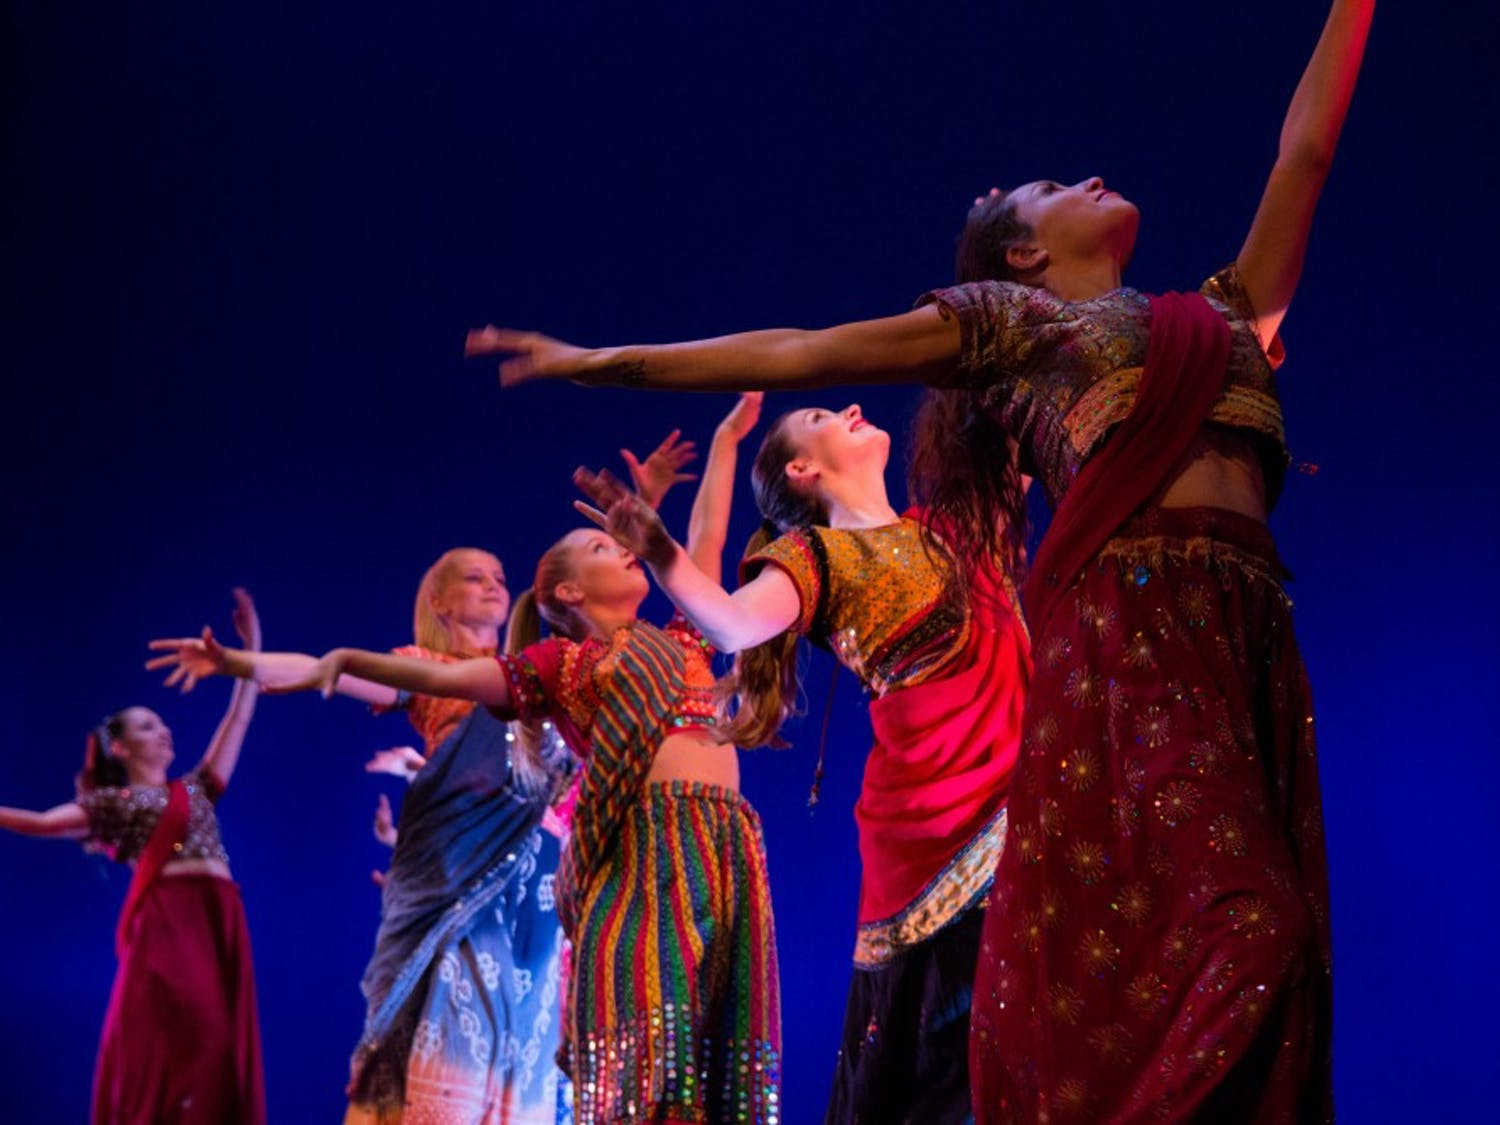 The Zodiaque Dance Company premiered their fall program on Oct. 18, entering its 44th season at UB.